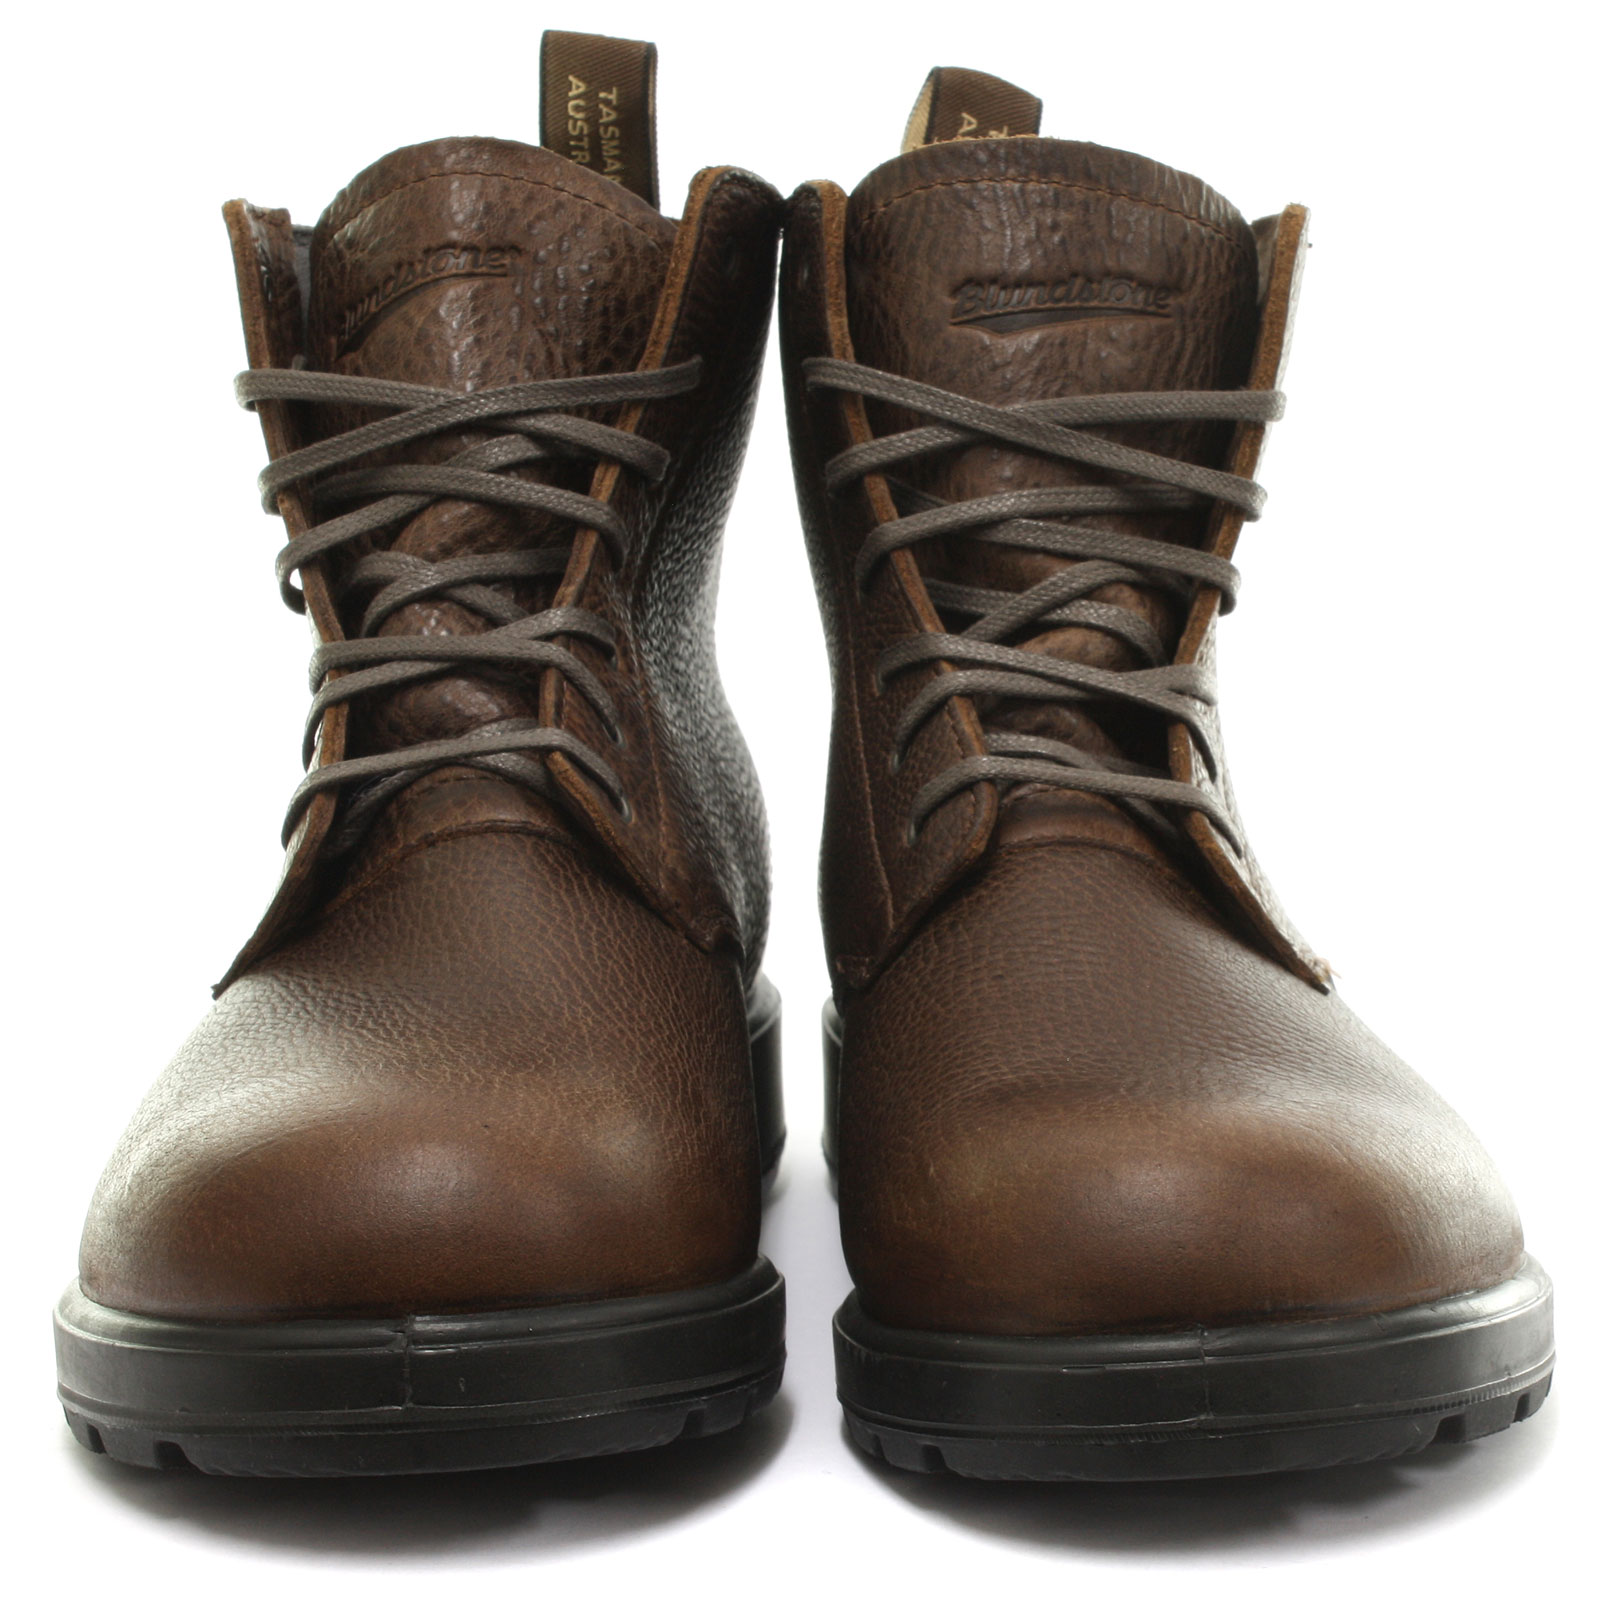 694d1798ce48 Blundstone Tumble Mens Brown Leather Casual BOOTS Lace-up Genuine ...